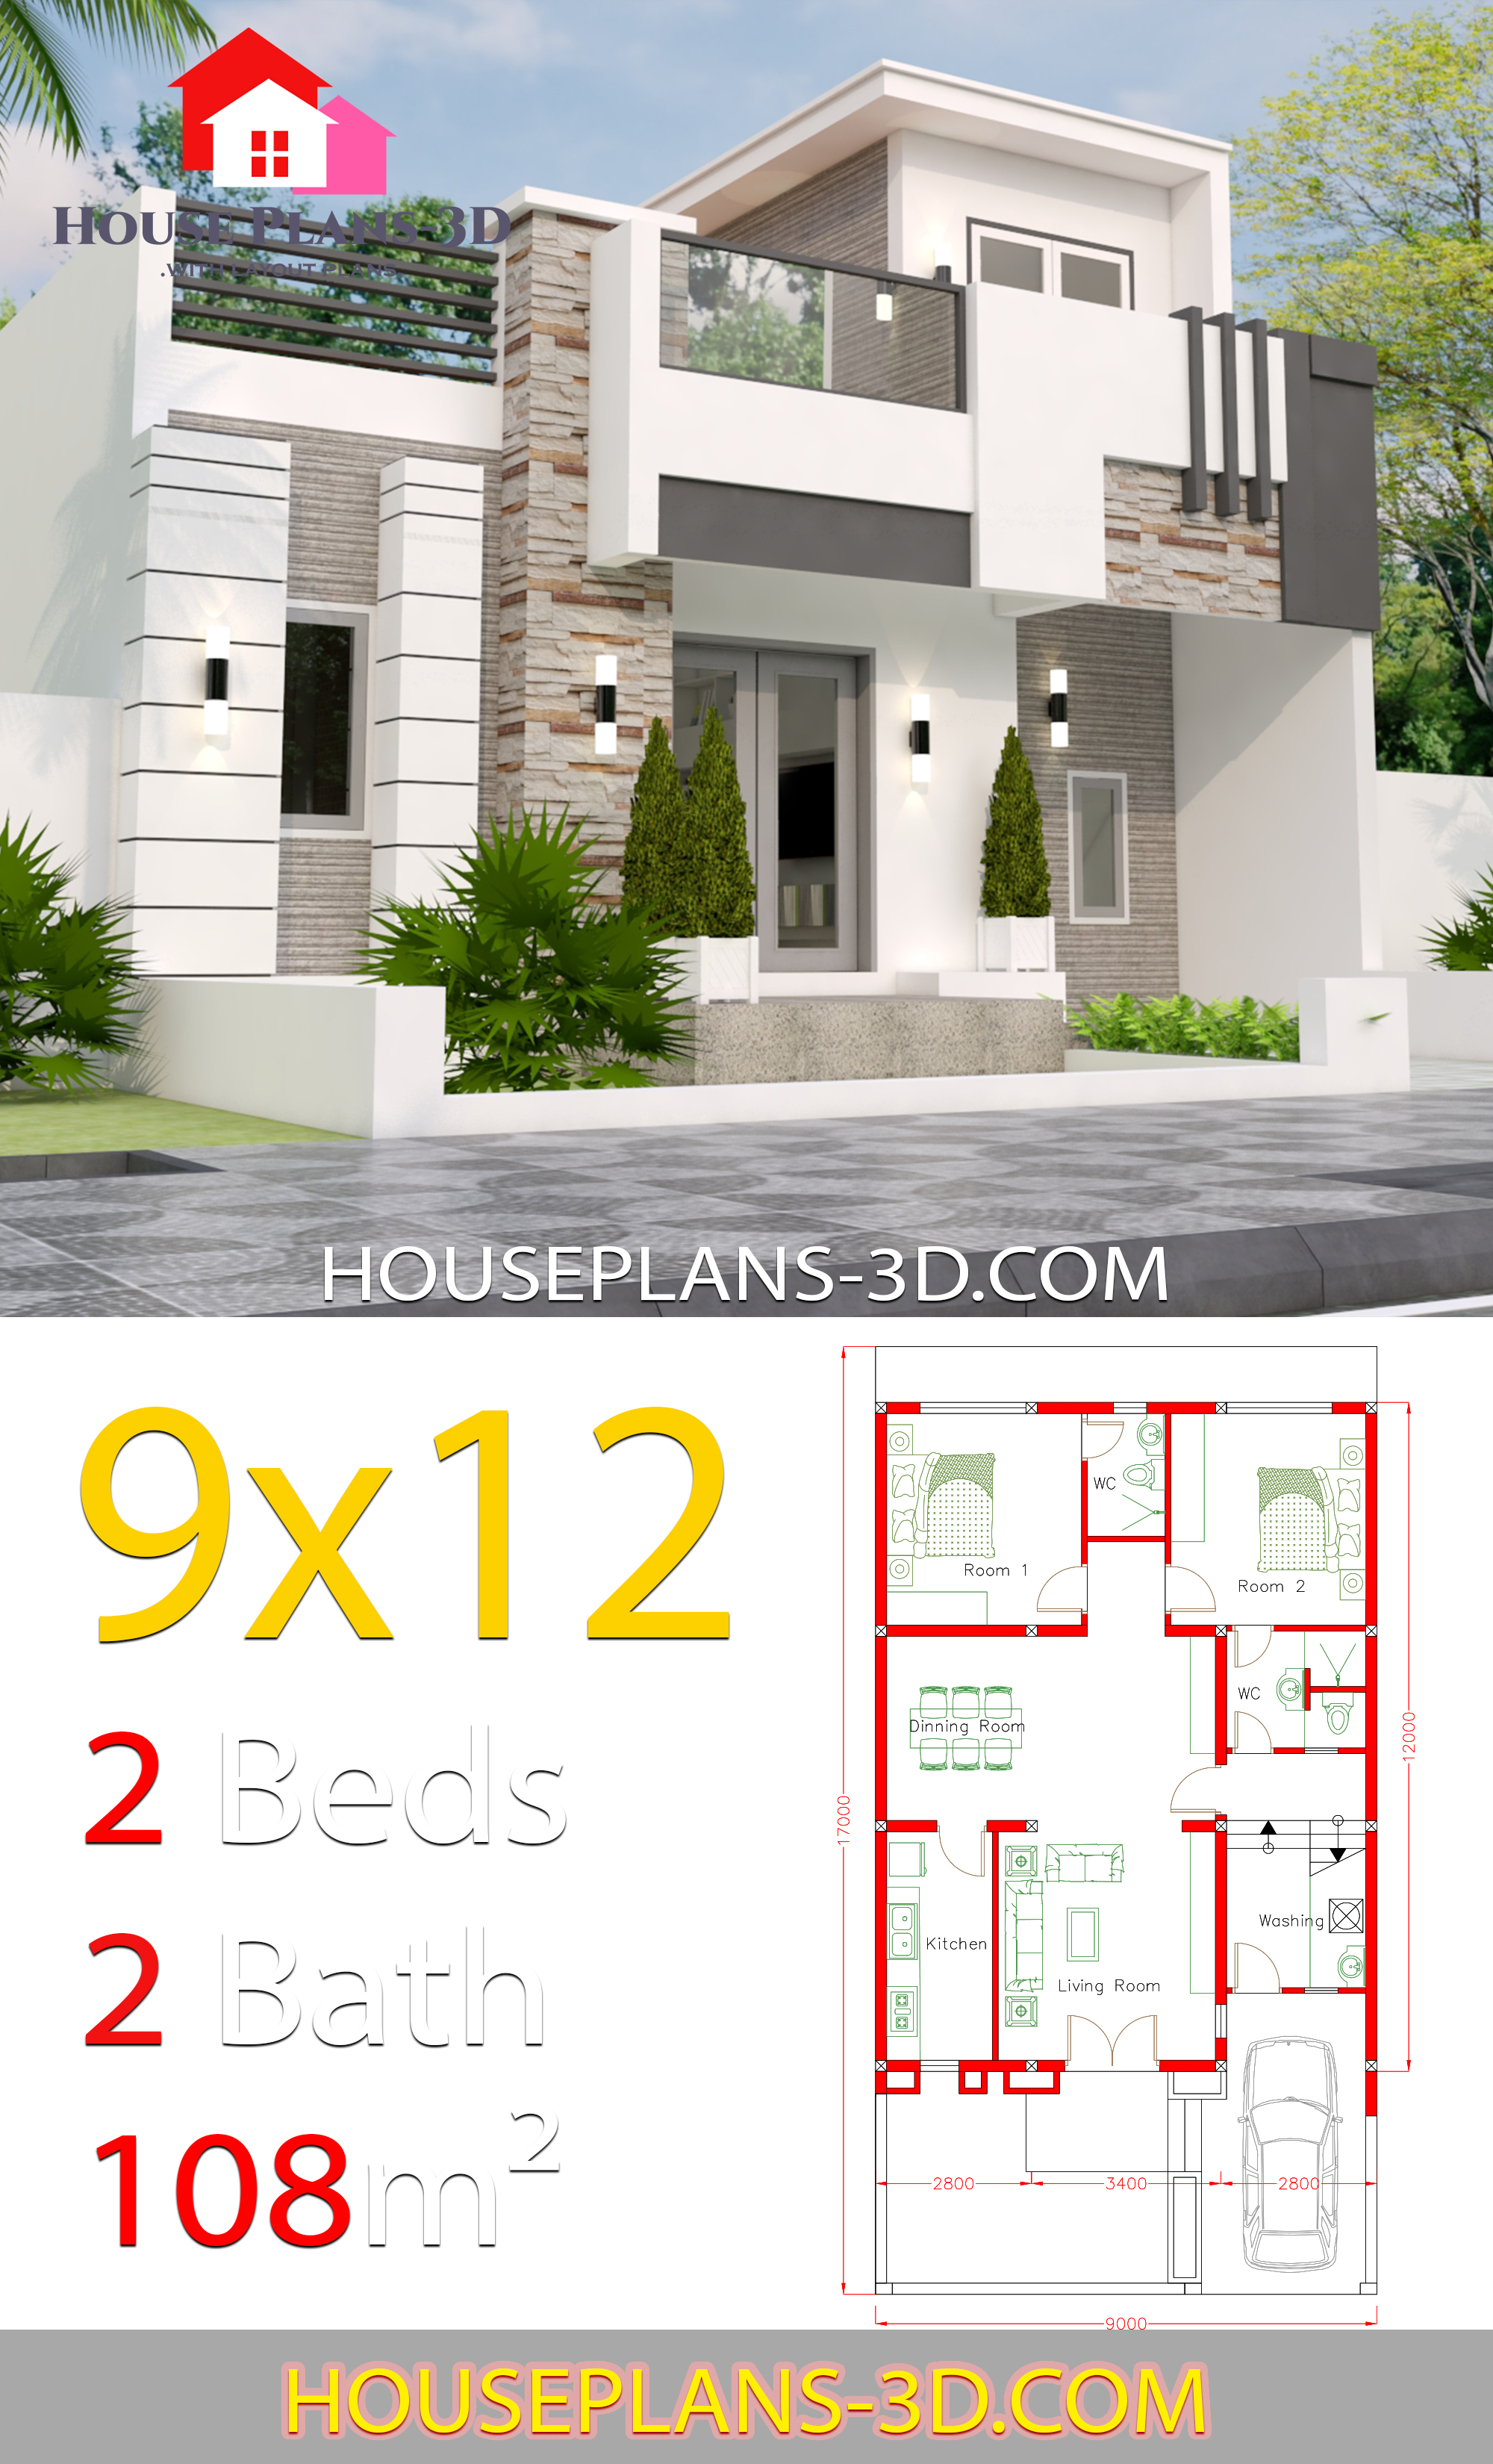 House Design 9x12 With 2 Bedrooms Full Plans House Plans 3d